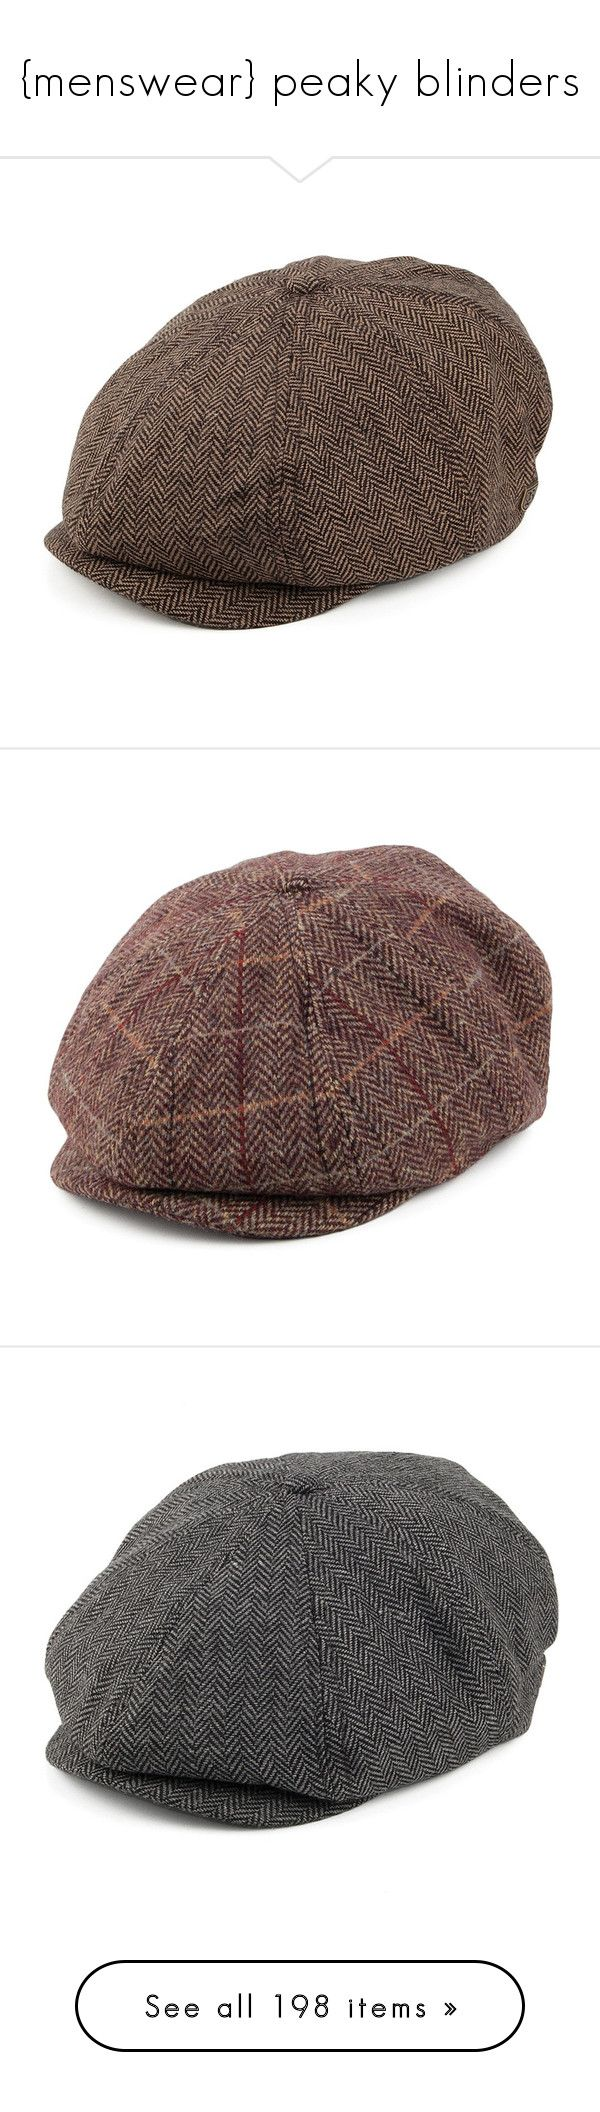 """""""{menswear} peaky blinders"""" by beyondthesea ❤ liked on Polyvore featuring accessories, hats, brown hat, khaki cap, brown newsboy hat, brixton hats, brown newsboy cap, newsboy cap, news boy cap and news boy hats"""